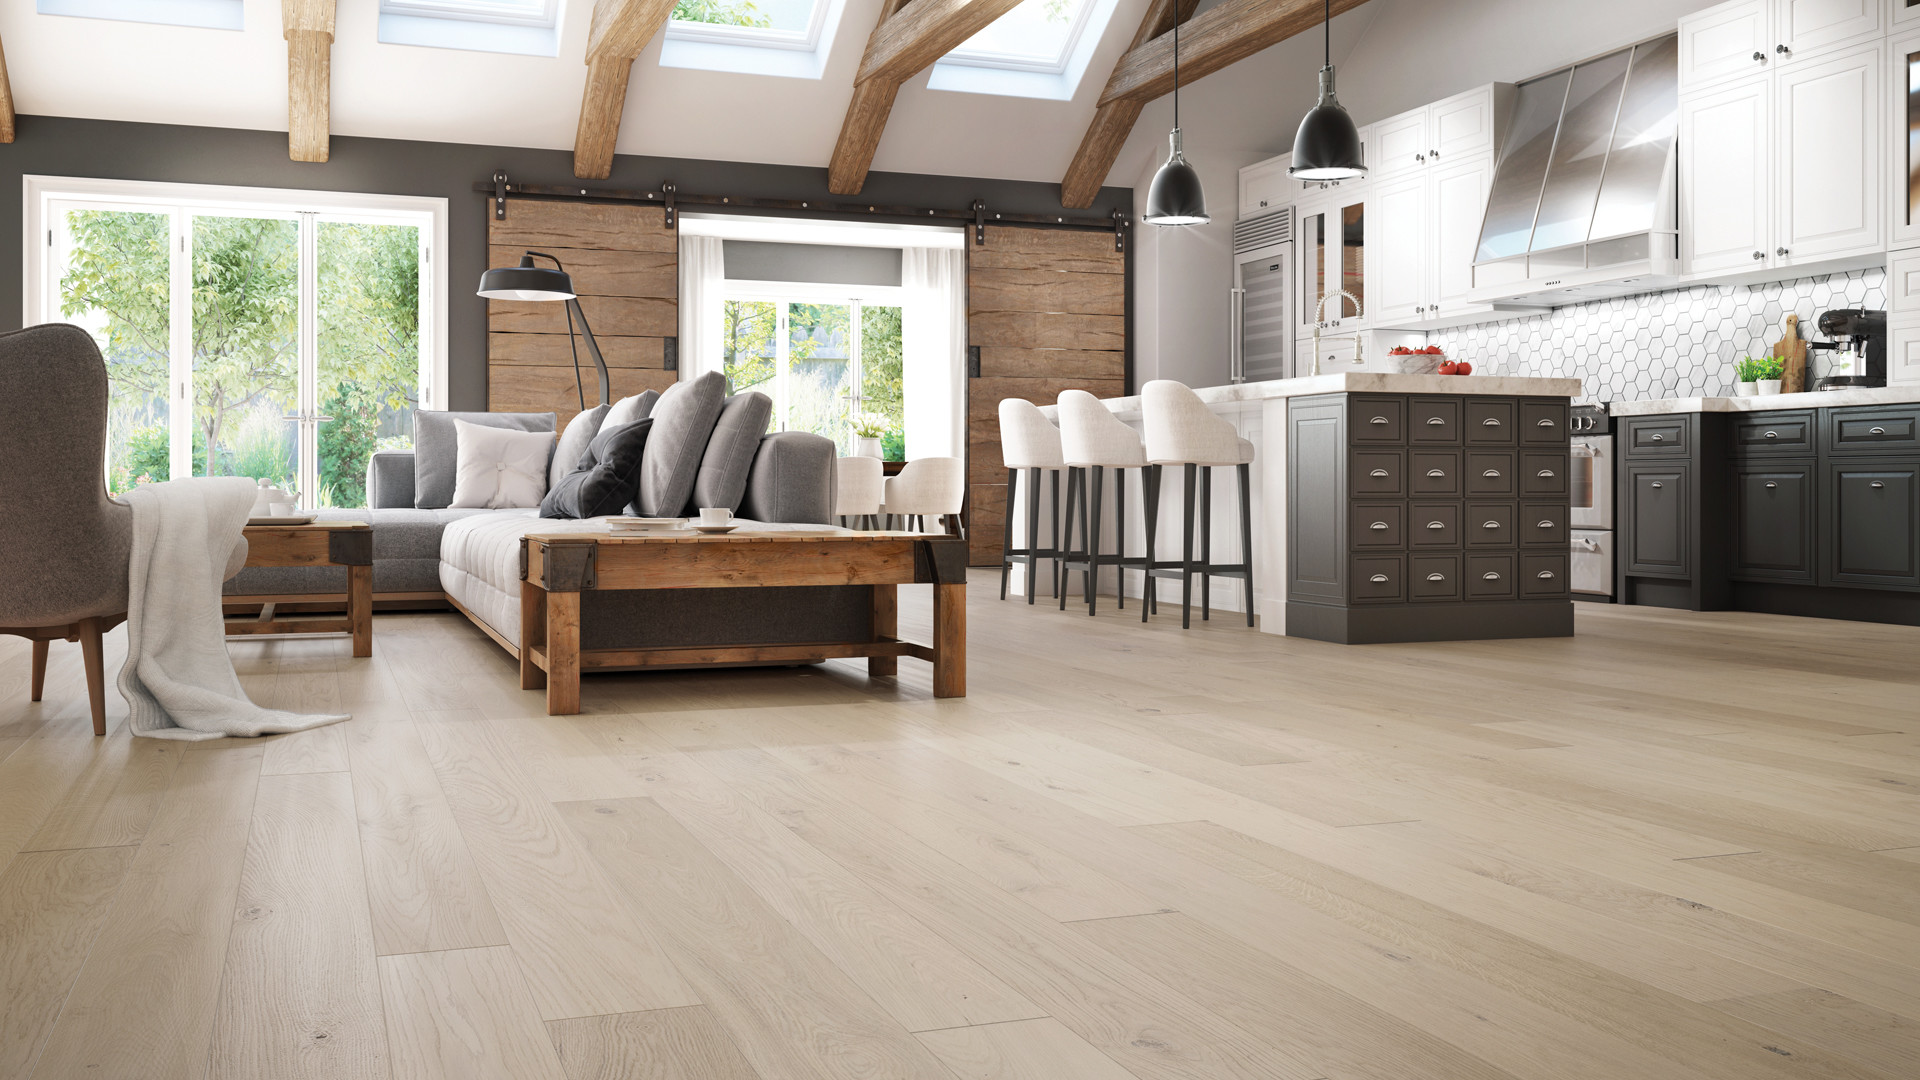 Hardwood Flooring Jobs Near Me Of 4 Latest Hardwood Flooring Trends Of 2018 Lauzon Flooring Intended for This Technology Brings Your Hardwood Floors and Well Being to A New Level by Improving Indoor Air Quality by Up to 85 and Decomposing Up to 99 6 Of